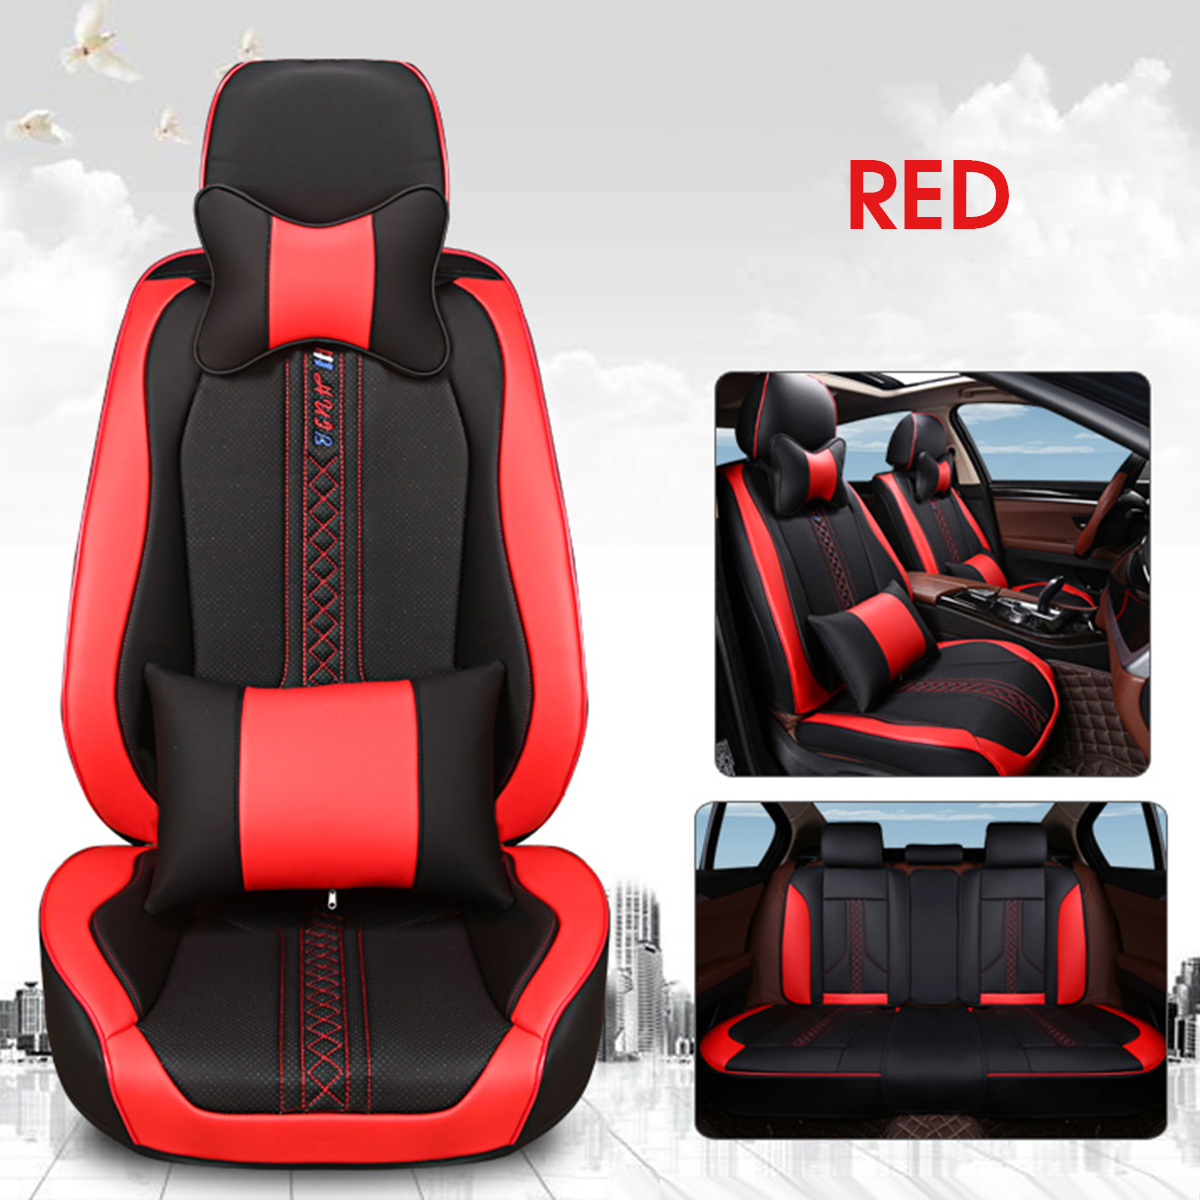 Leather Non-slip Four Season Front Rear Car Seat Covers Pillows for 5-seat Car